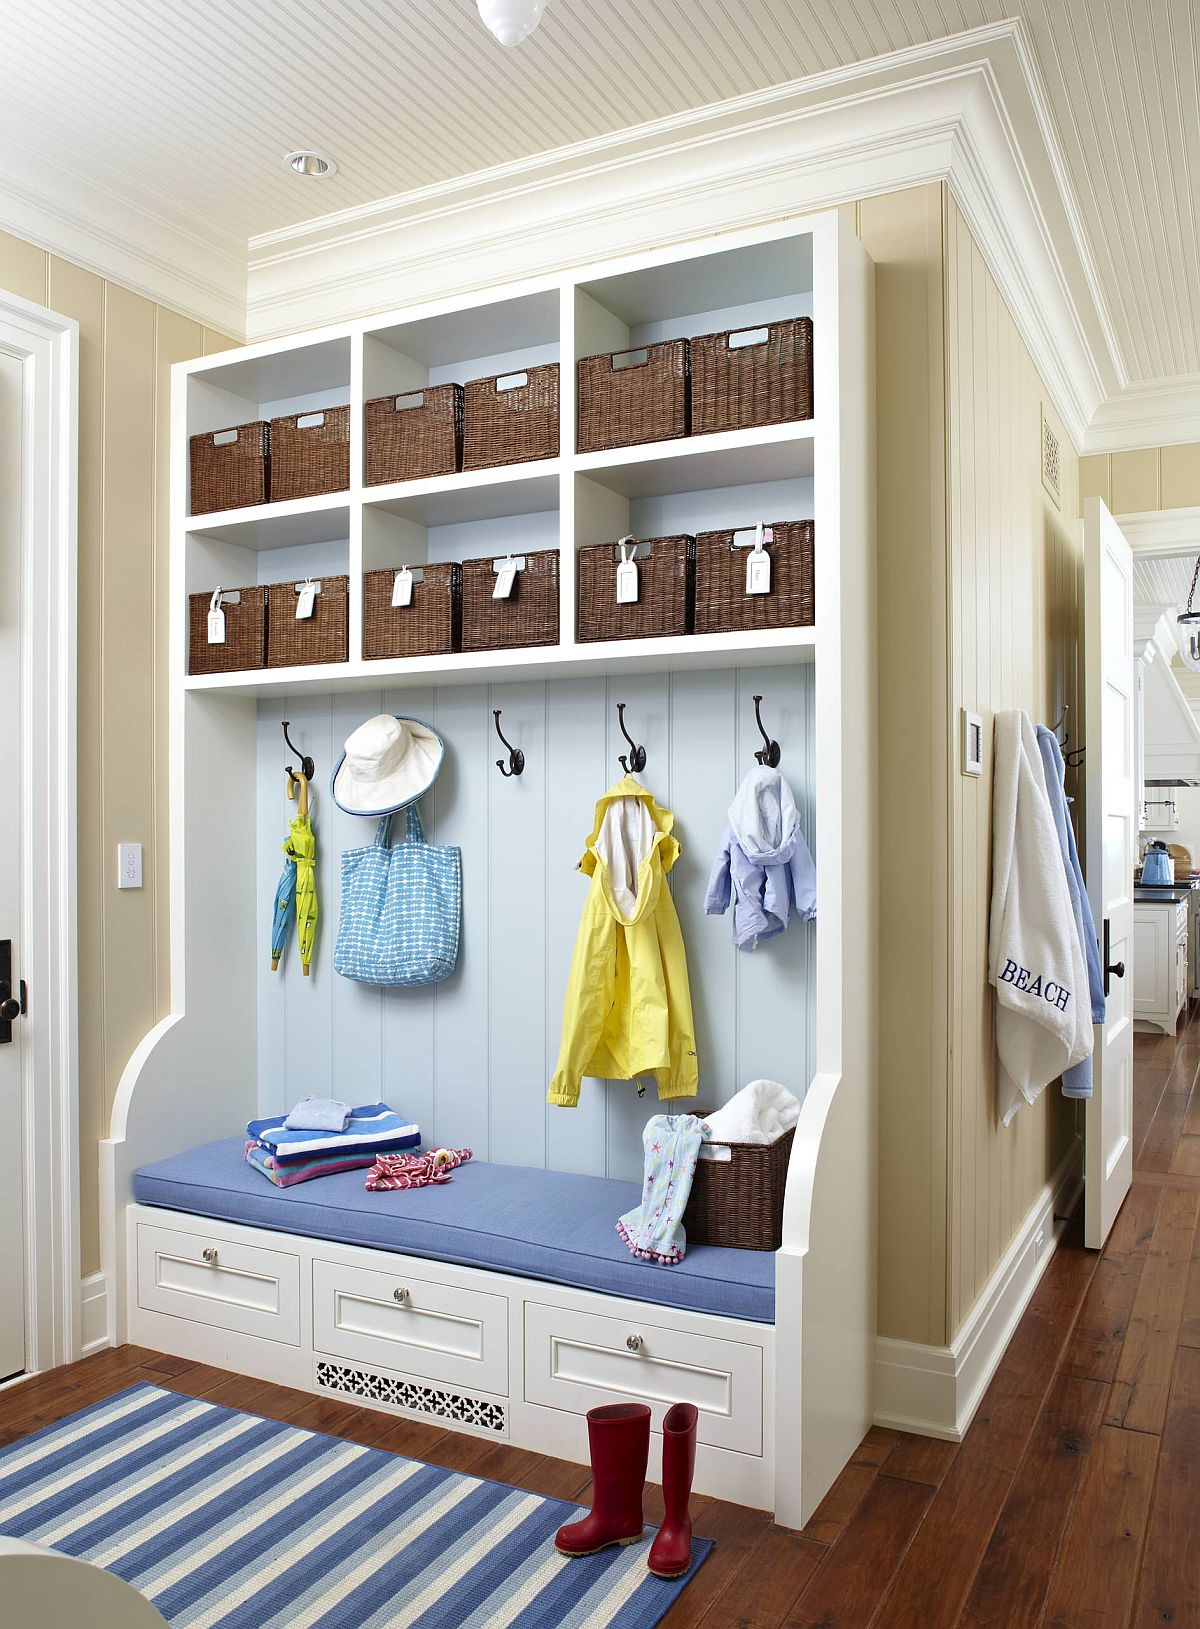 Find-a-mudroom-setup-that-fits-with-the-specific-spatial-needs-of-your-home-18294